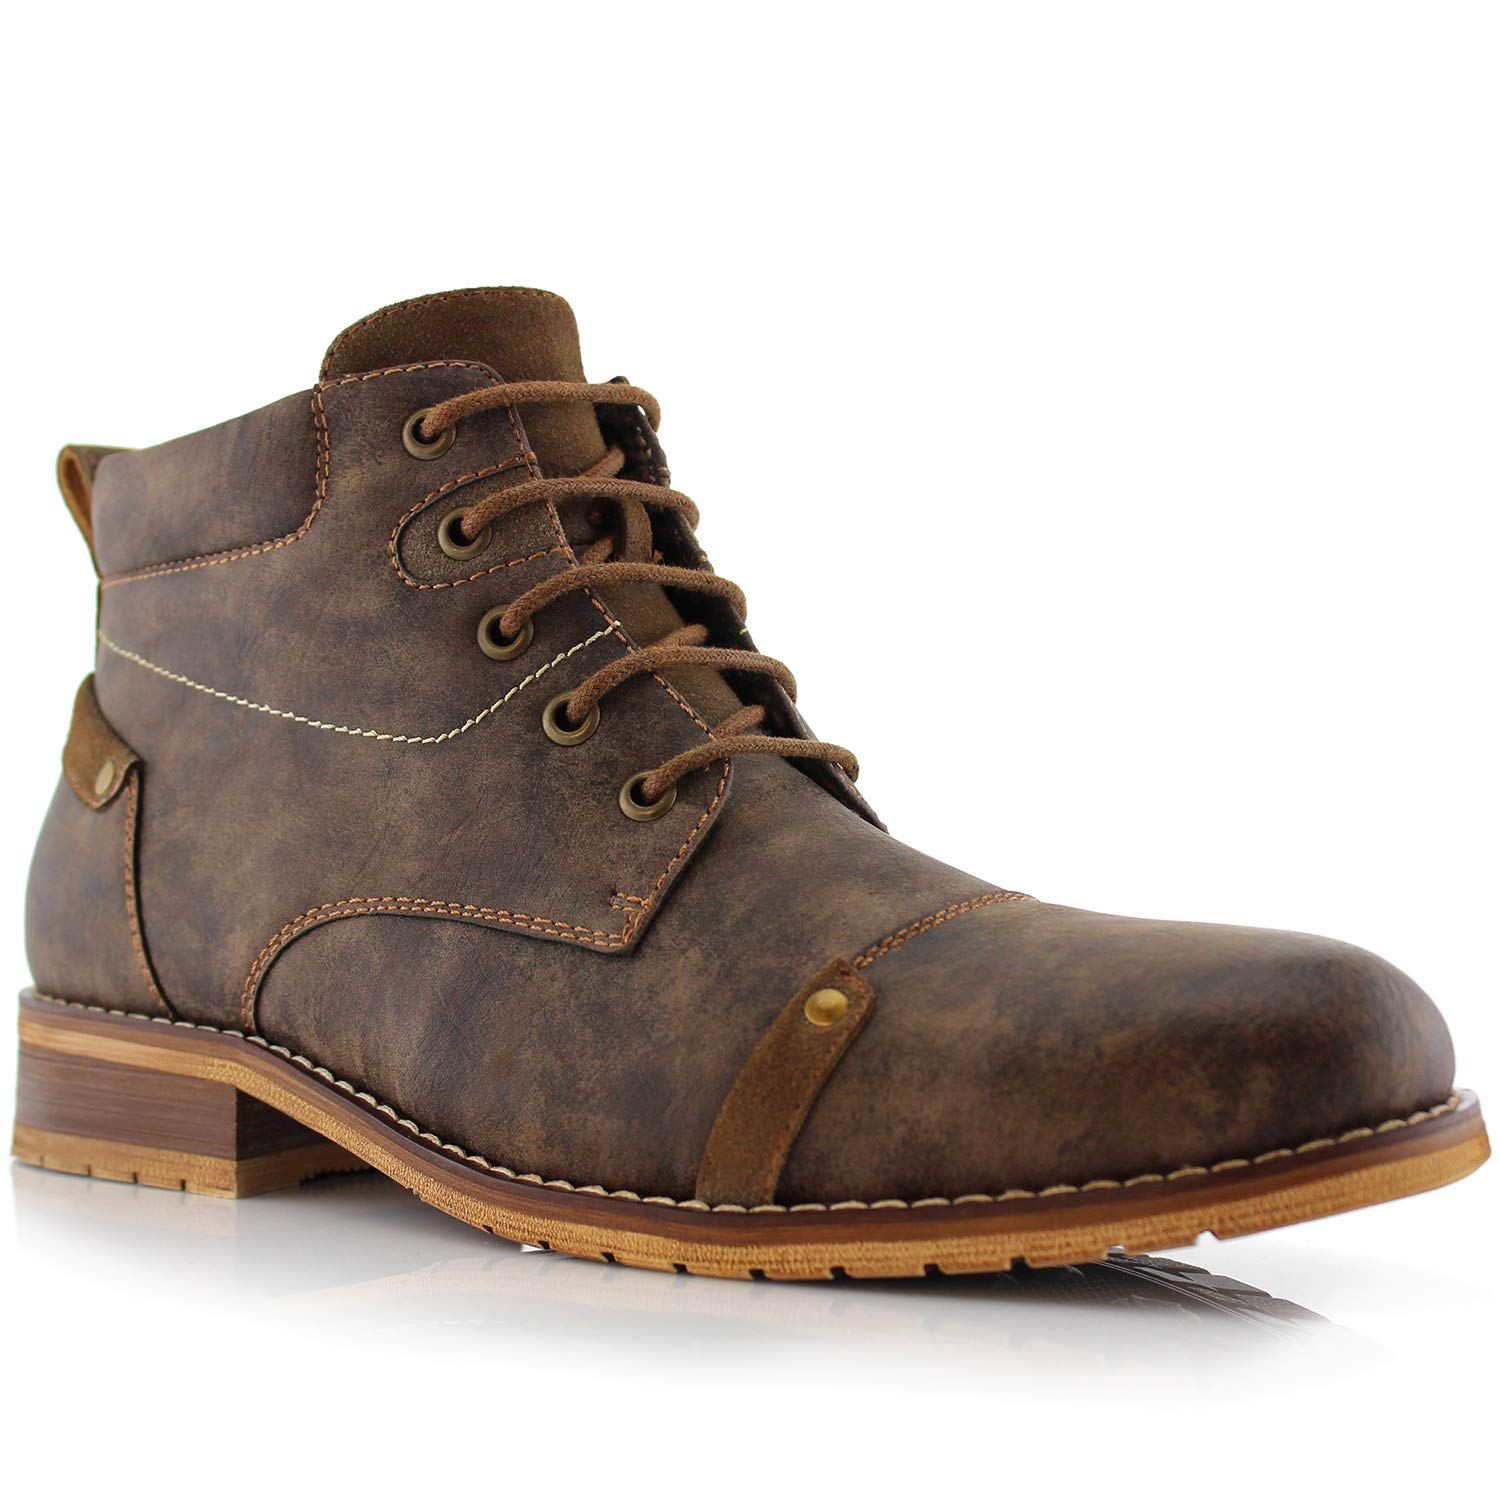 Ferro Aldo Colin MFA806033 Brown805